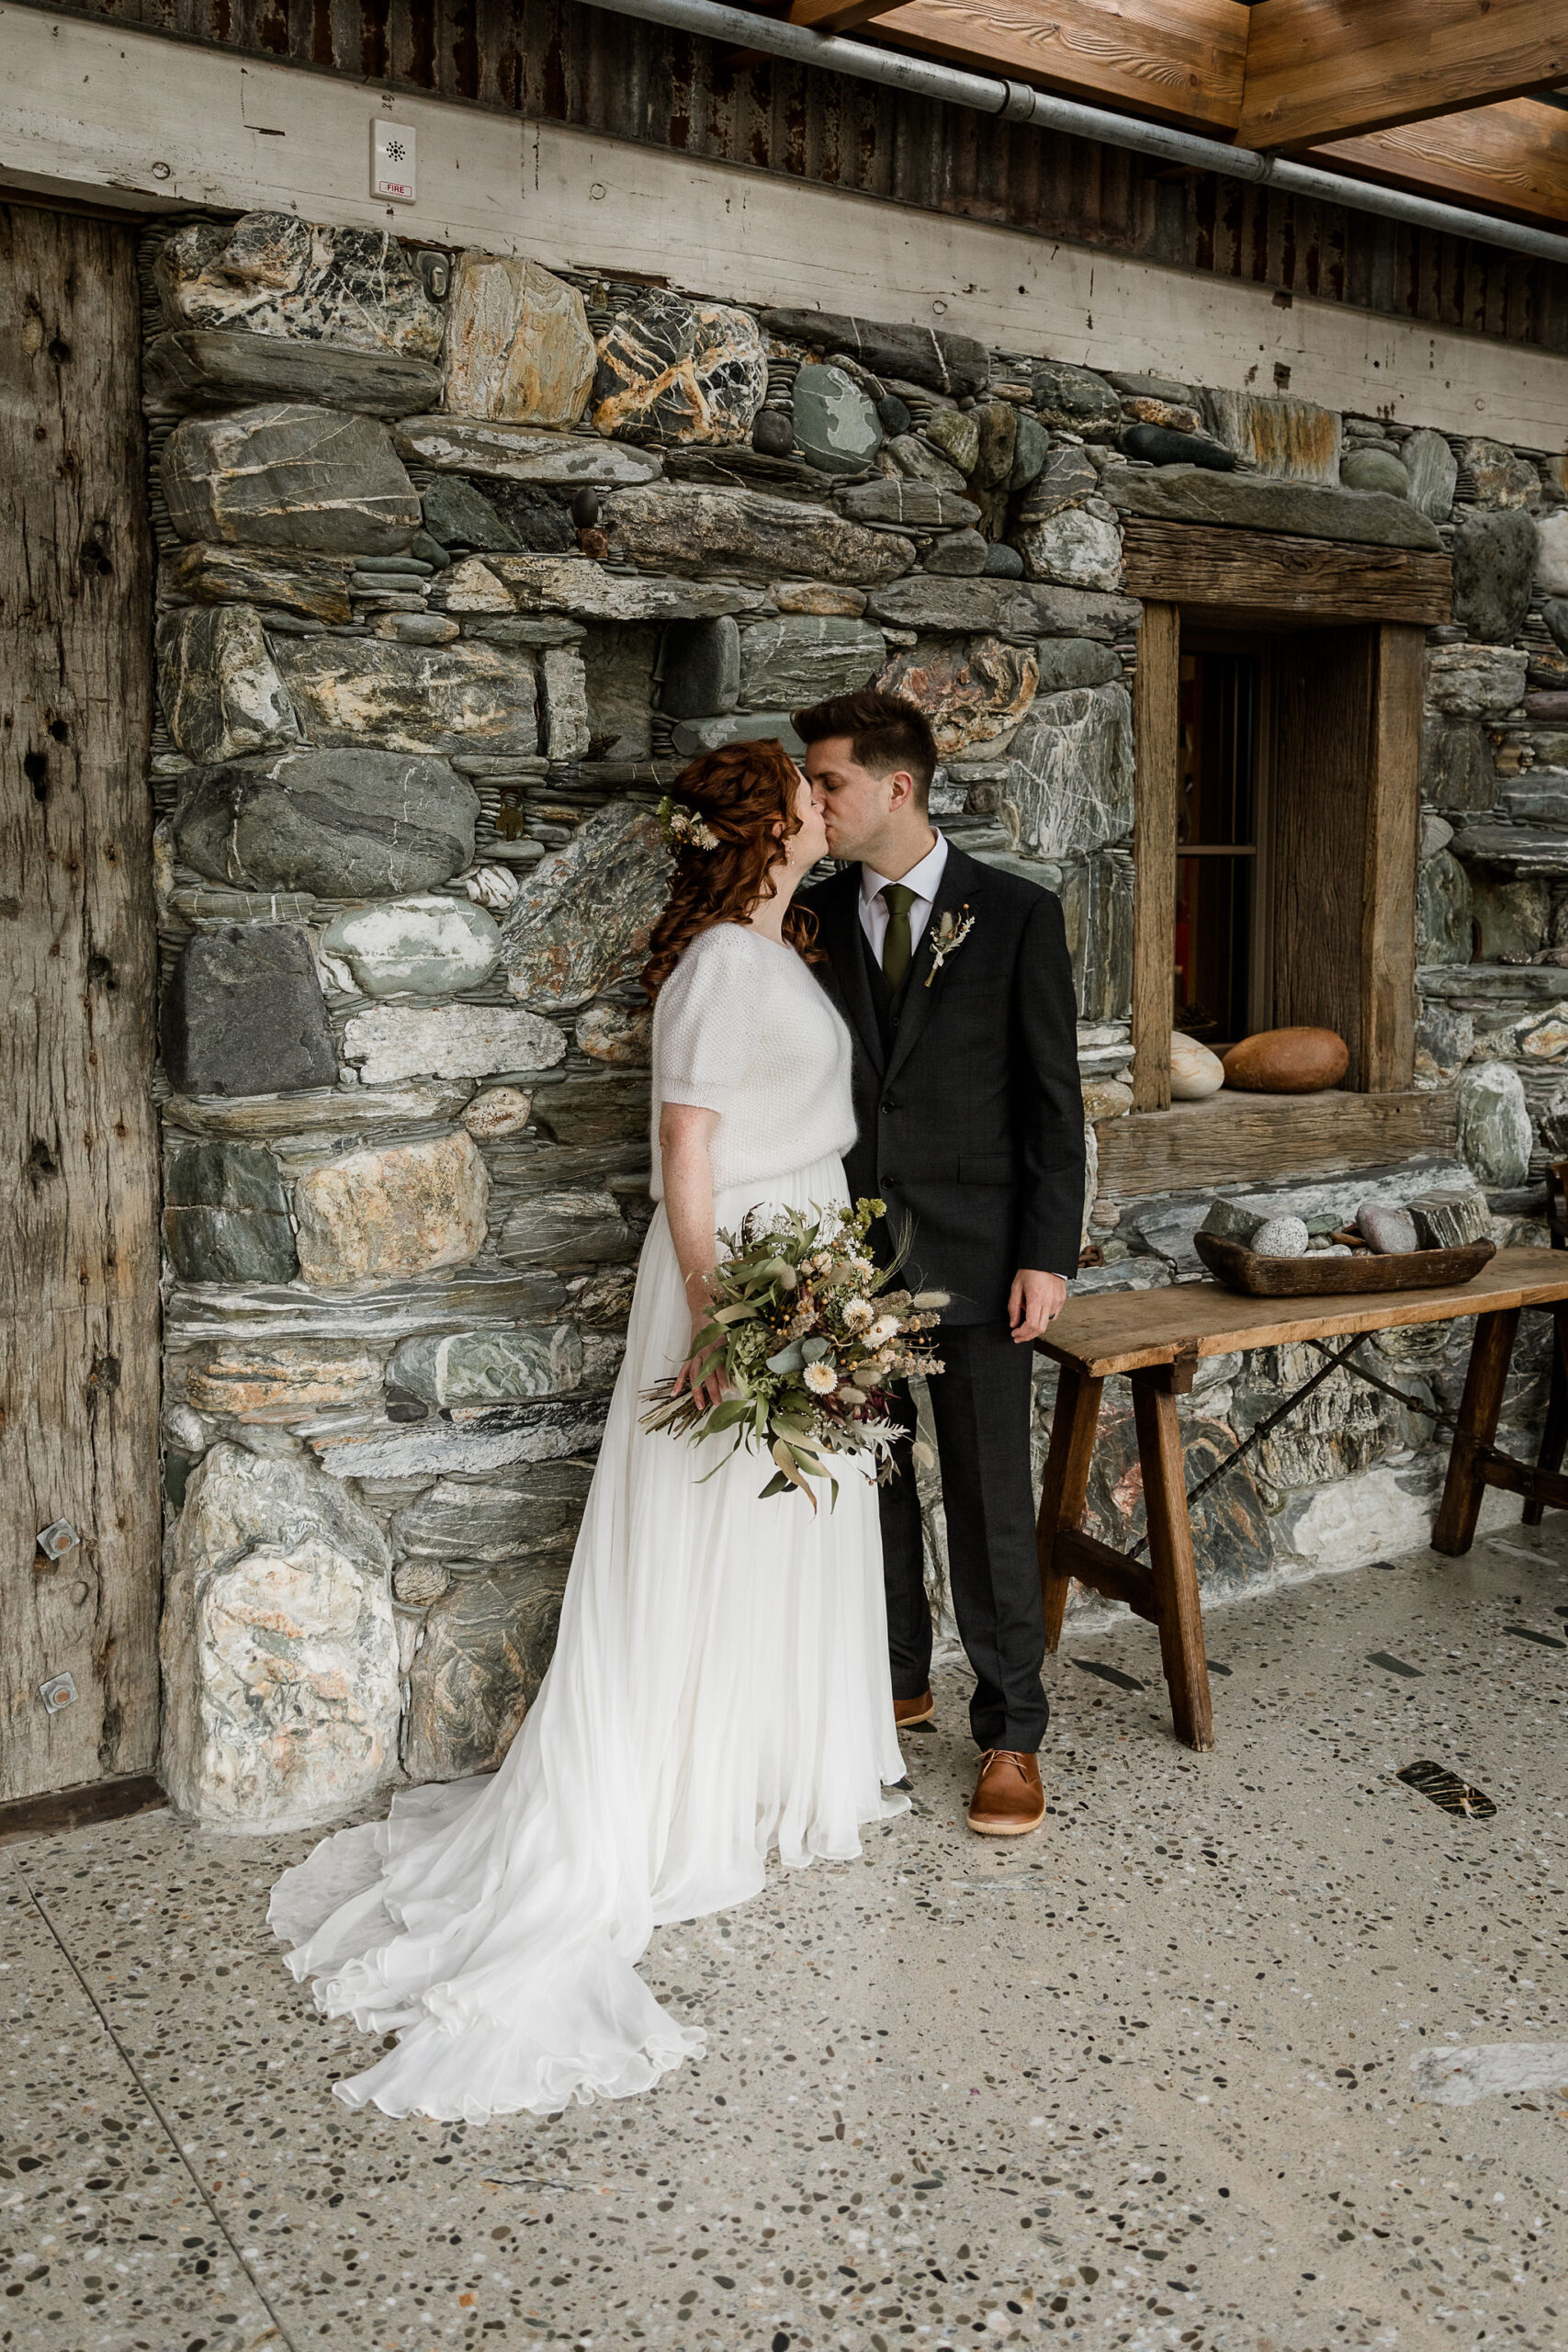 Fionnuala & Graham - Camp Glenorchy Elopement - Susan Miller Photography